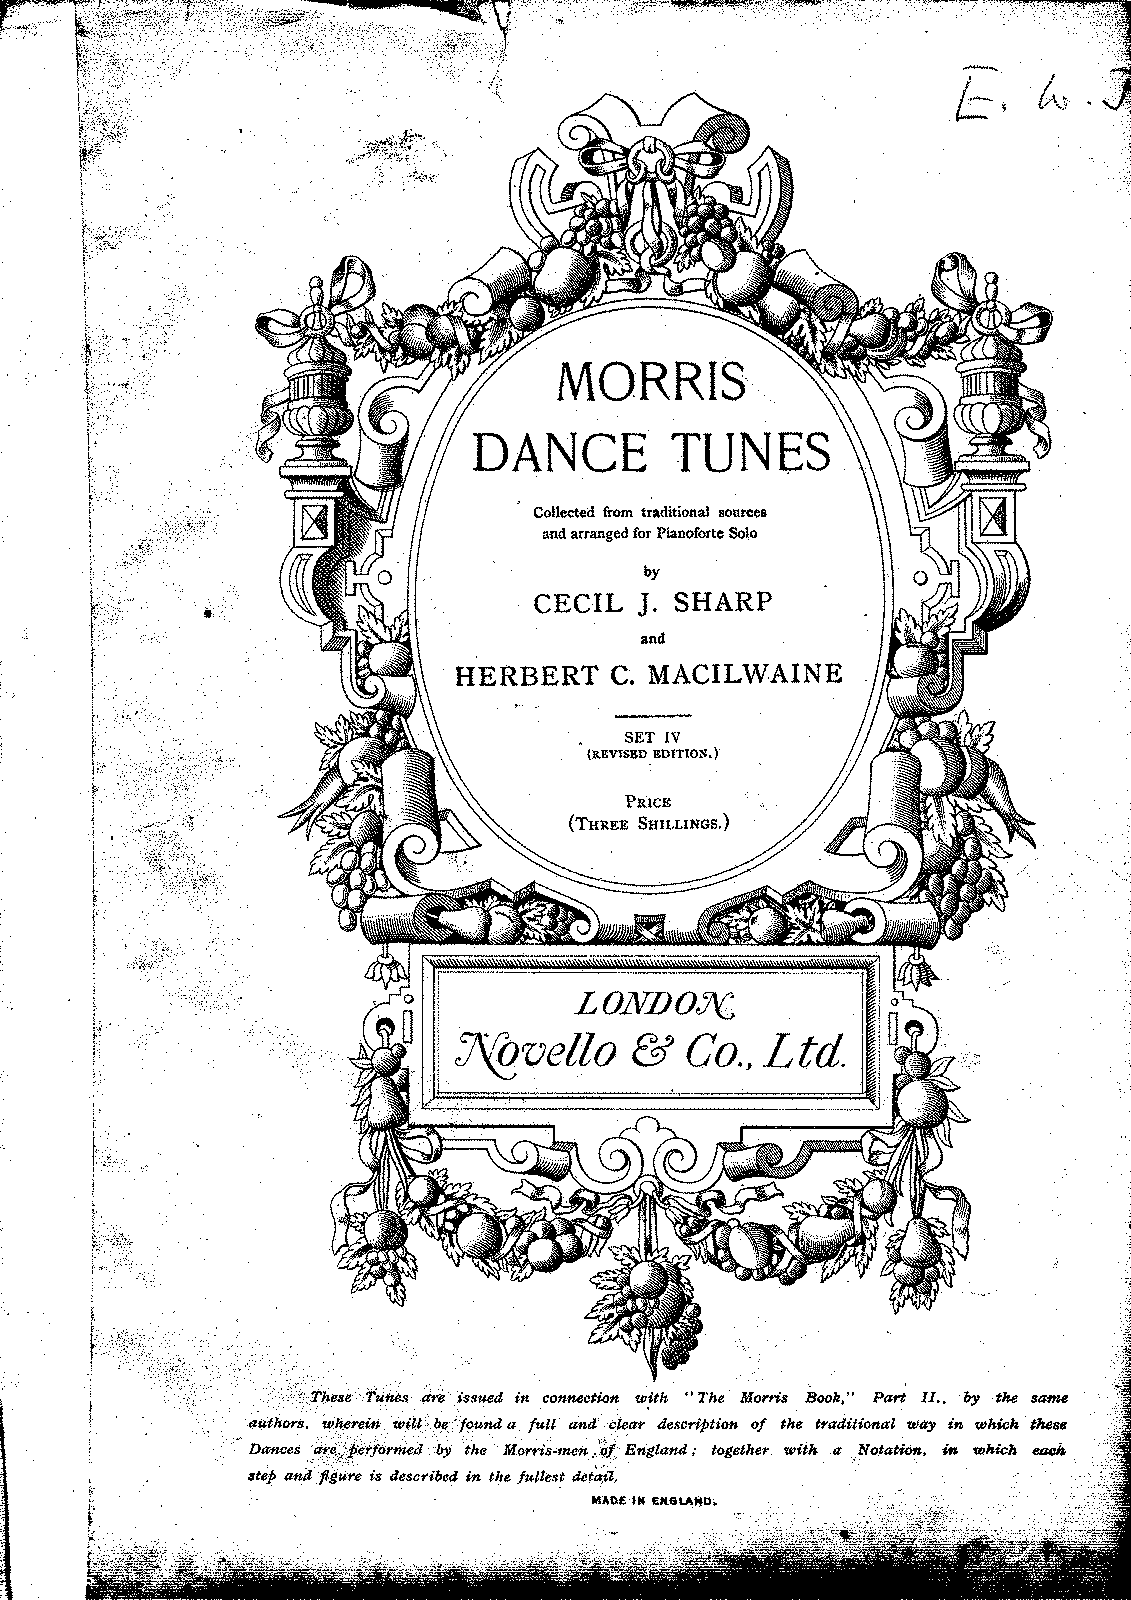 PMLP434858-Sharp Morris Tunes Set IV.pdf